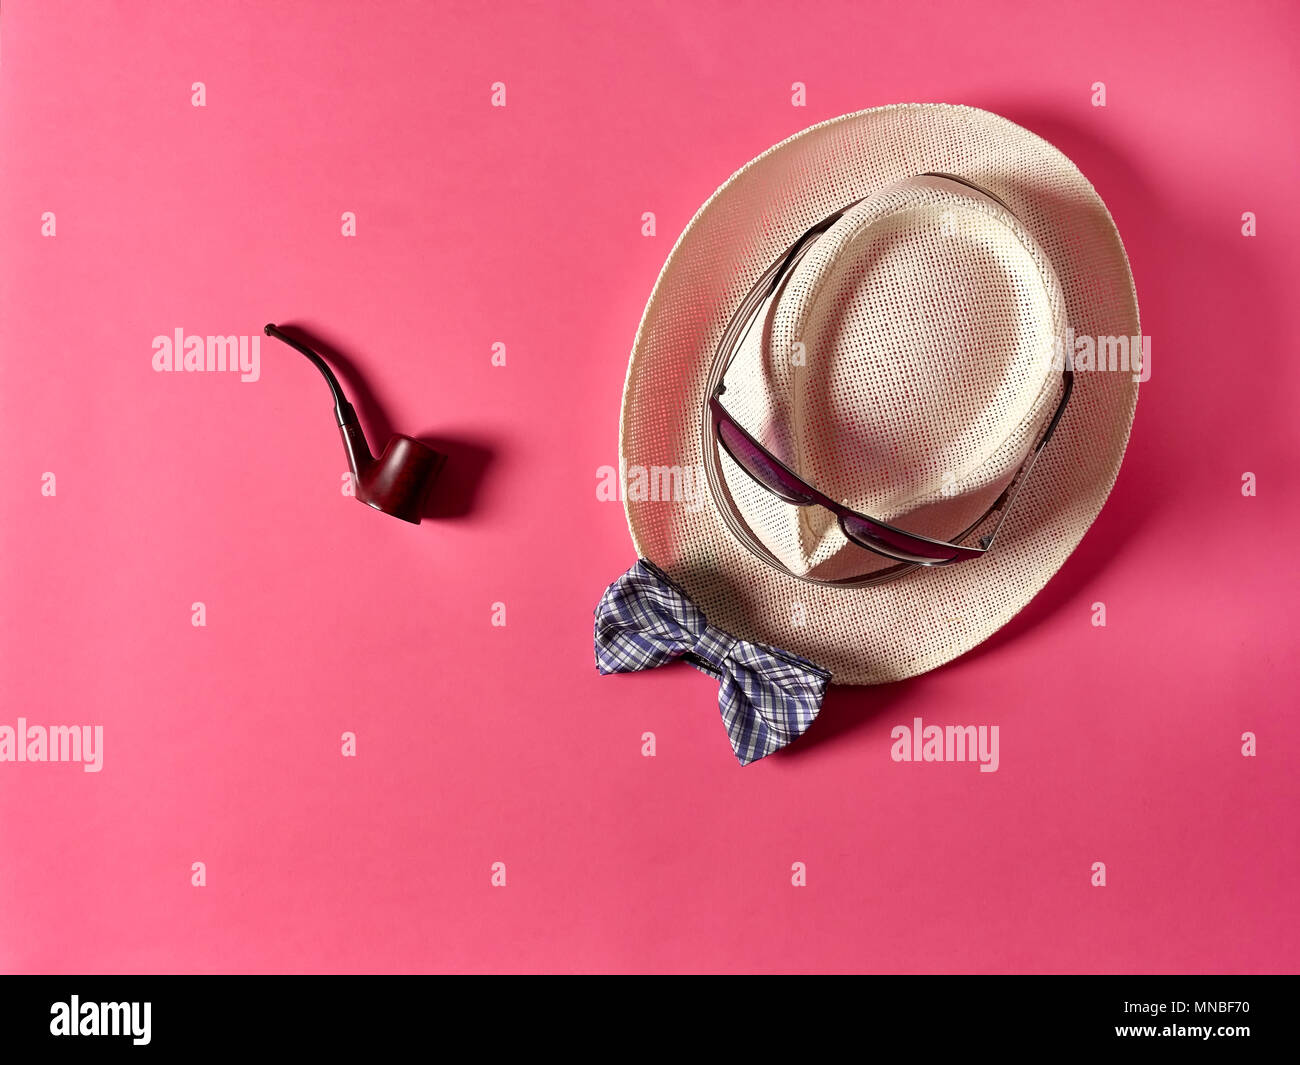 Nice smoking pipe lying on pink background near straw hat with sunglasses and bow tie - Stock Image